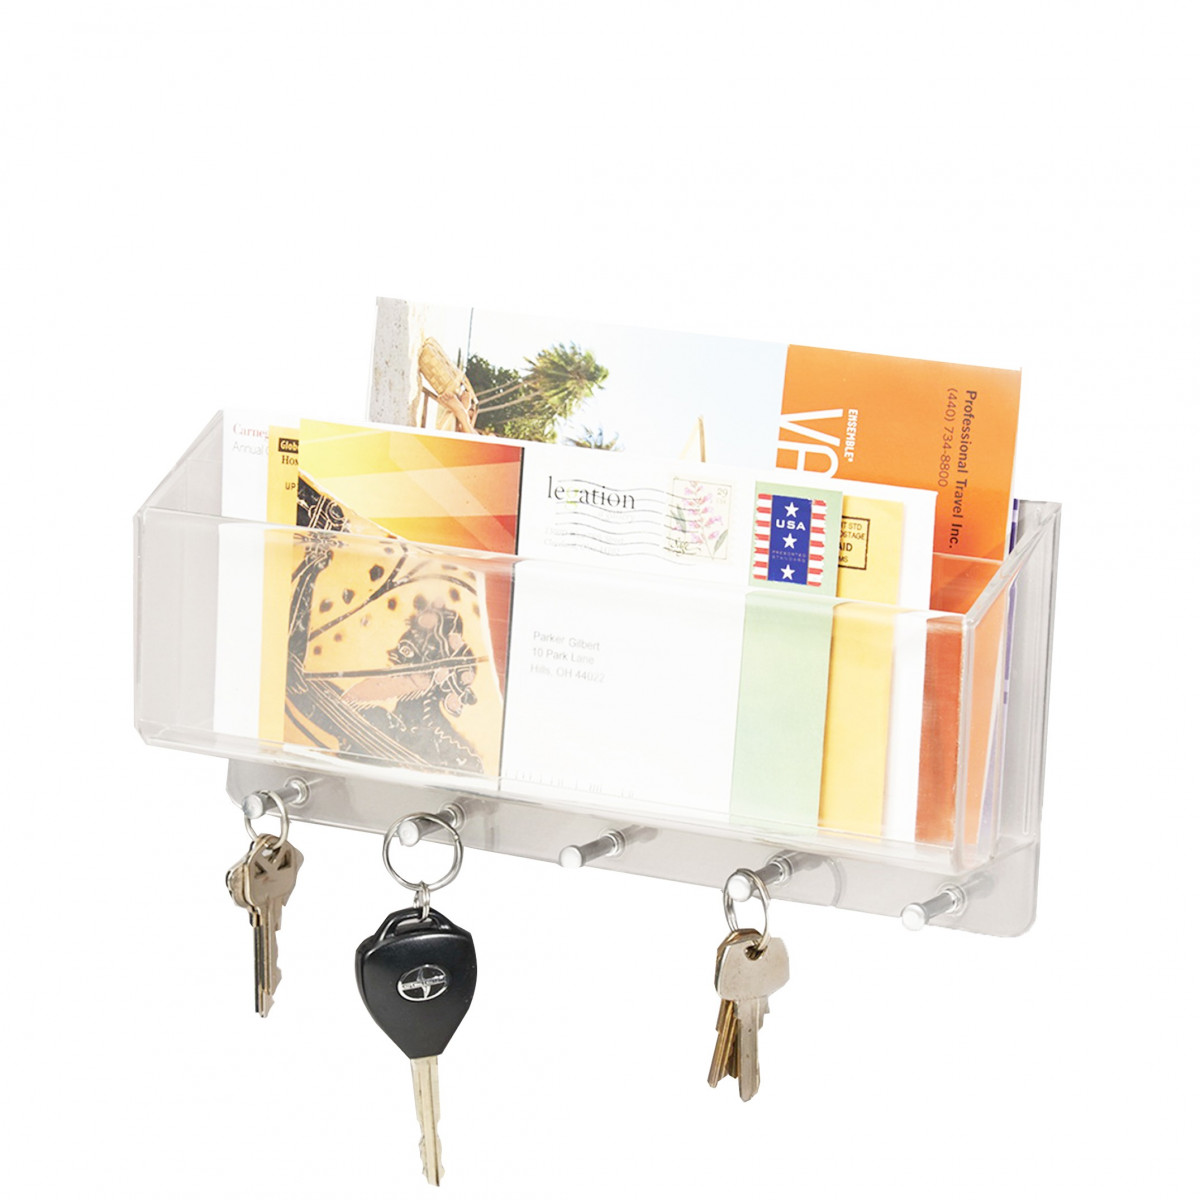 Porte courrier cl s mural rangement entr e for Porte courrier mural